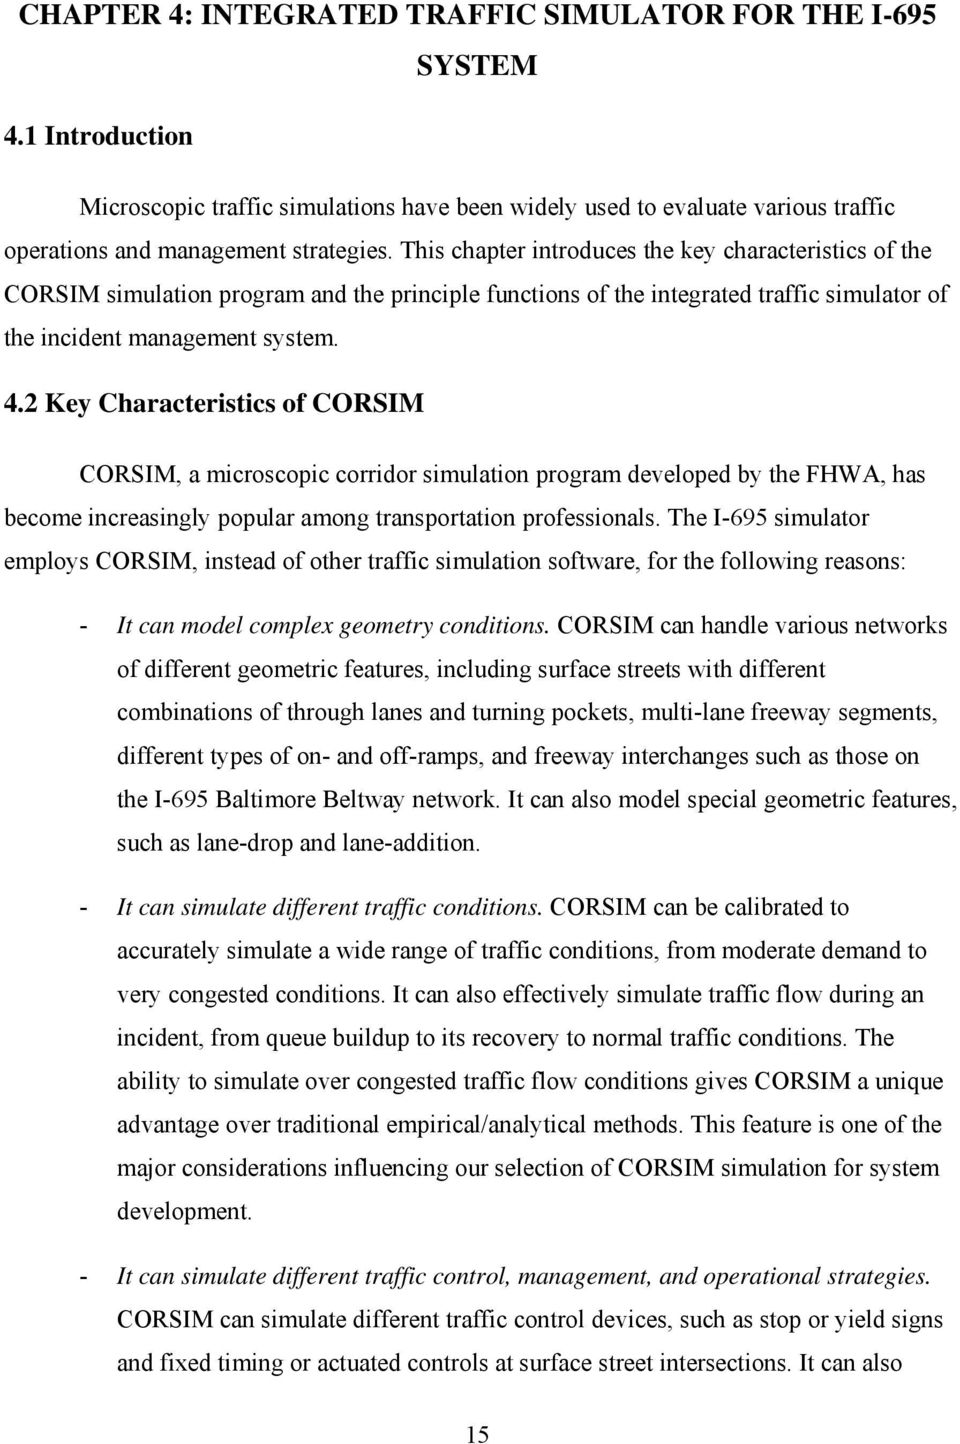 2 Key Characteristics of CORSIM CORSIM, a microscopic corridor simulation program developed by the FHWA, has become increasingly popular among transportation professionals.